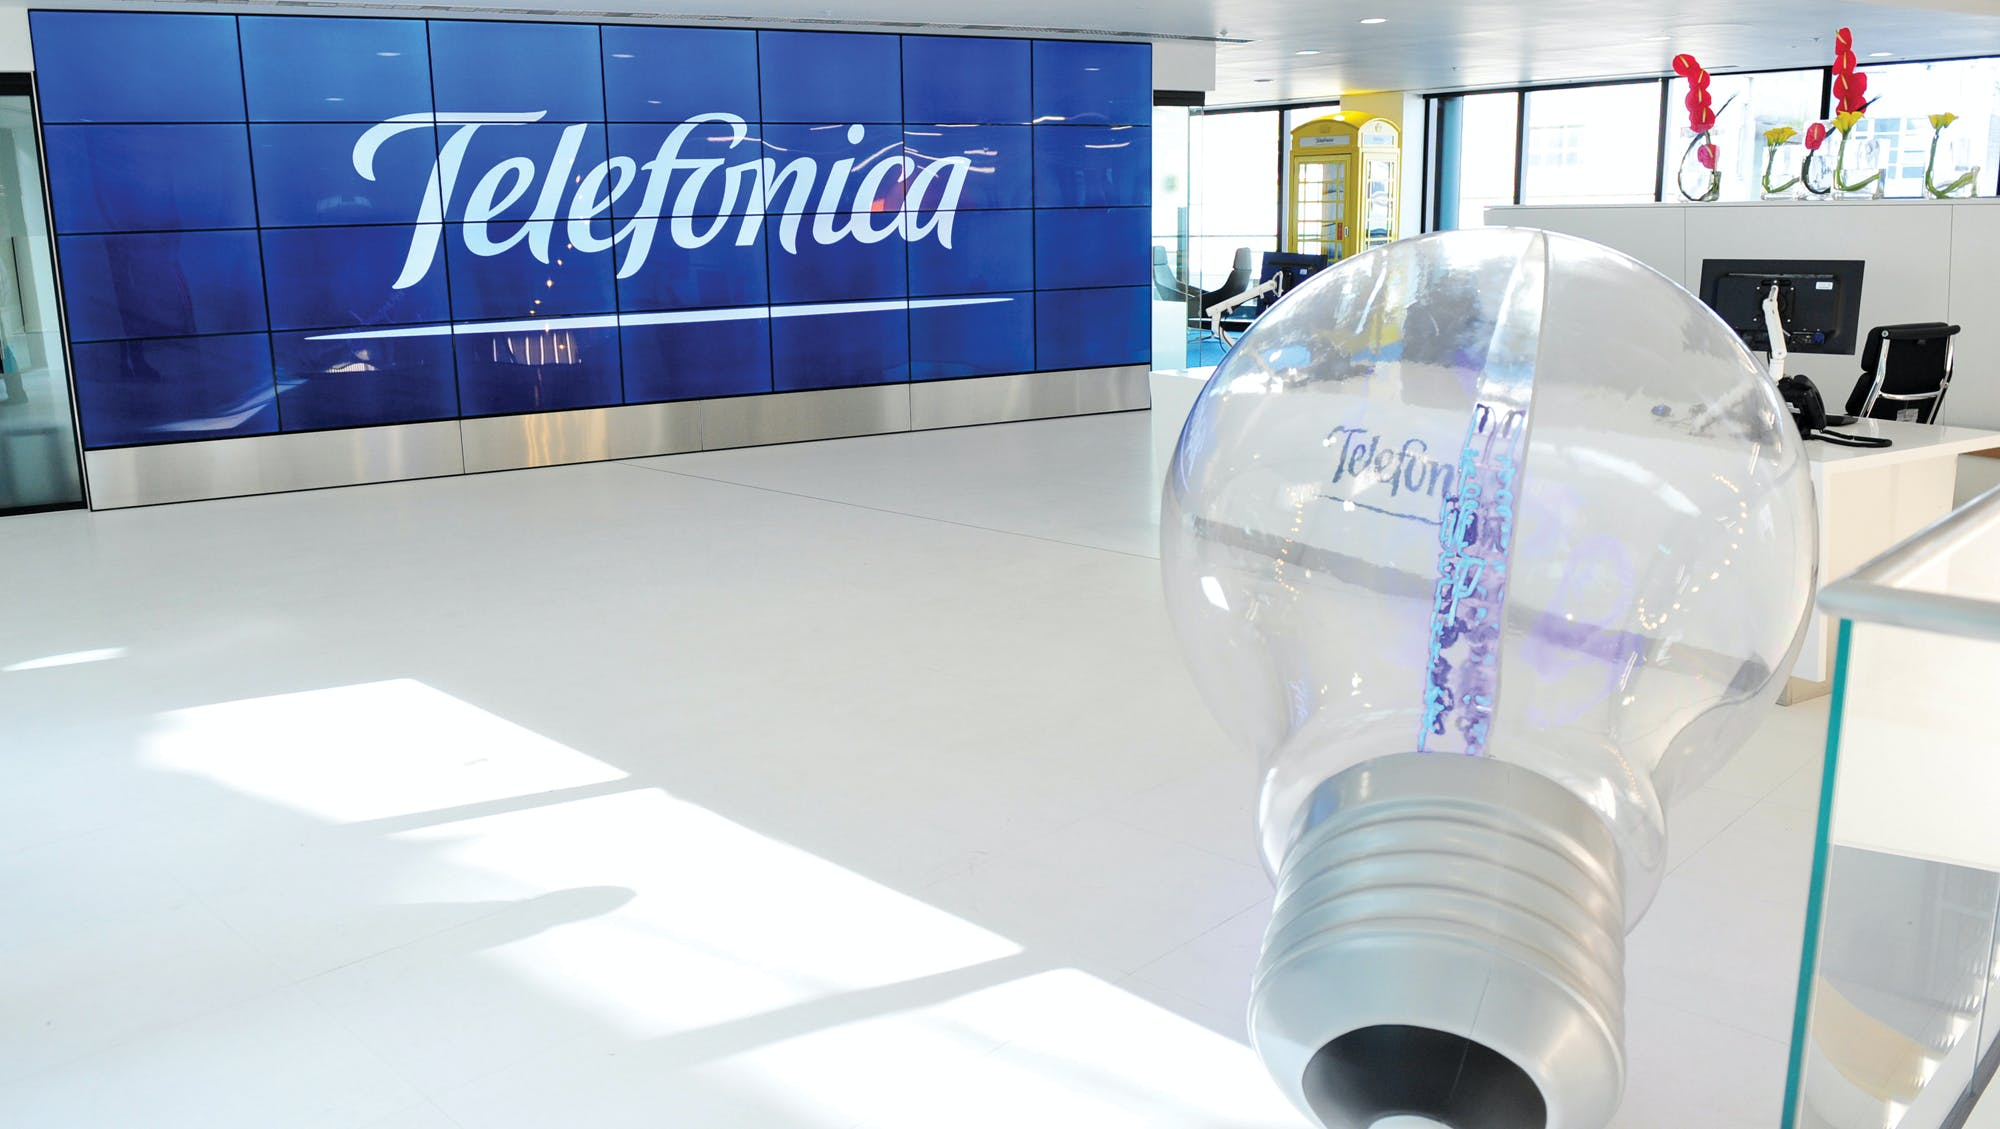 telefonica-building-2014-fullwidth